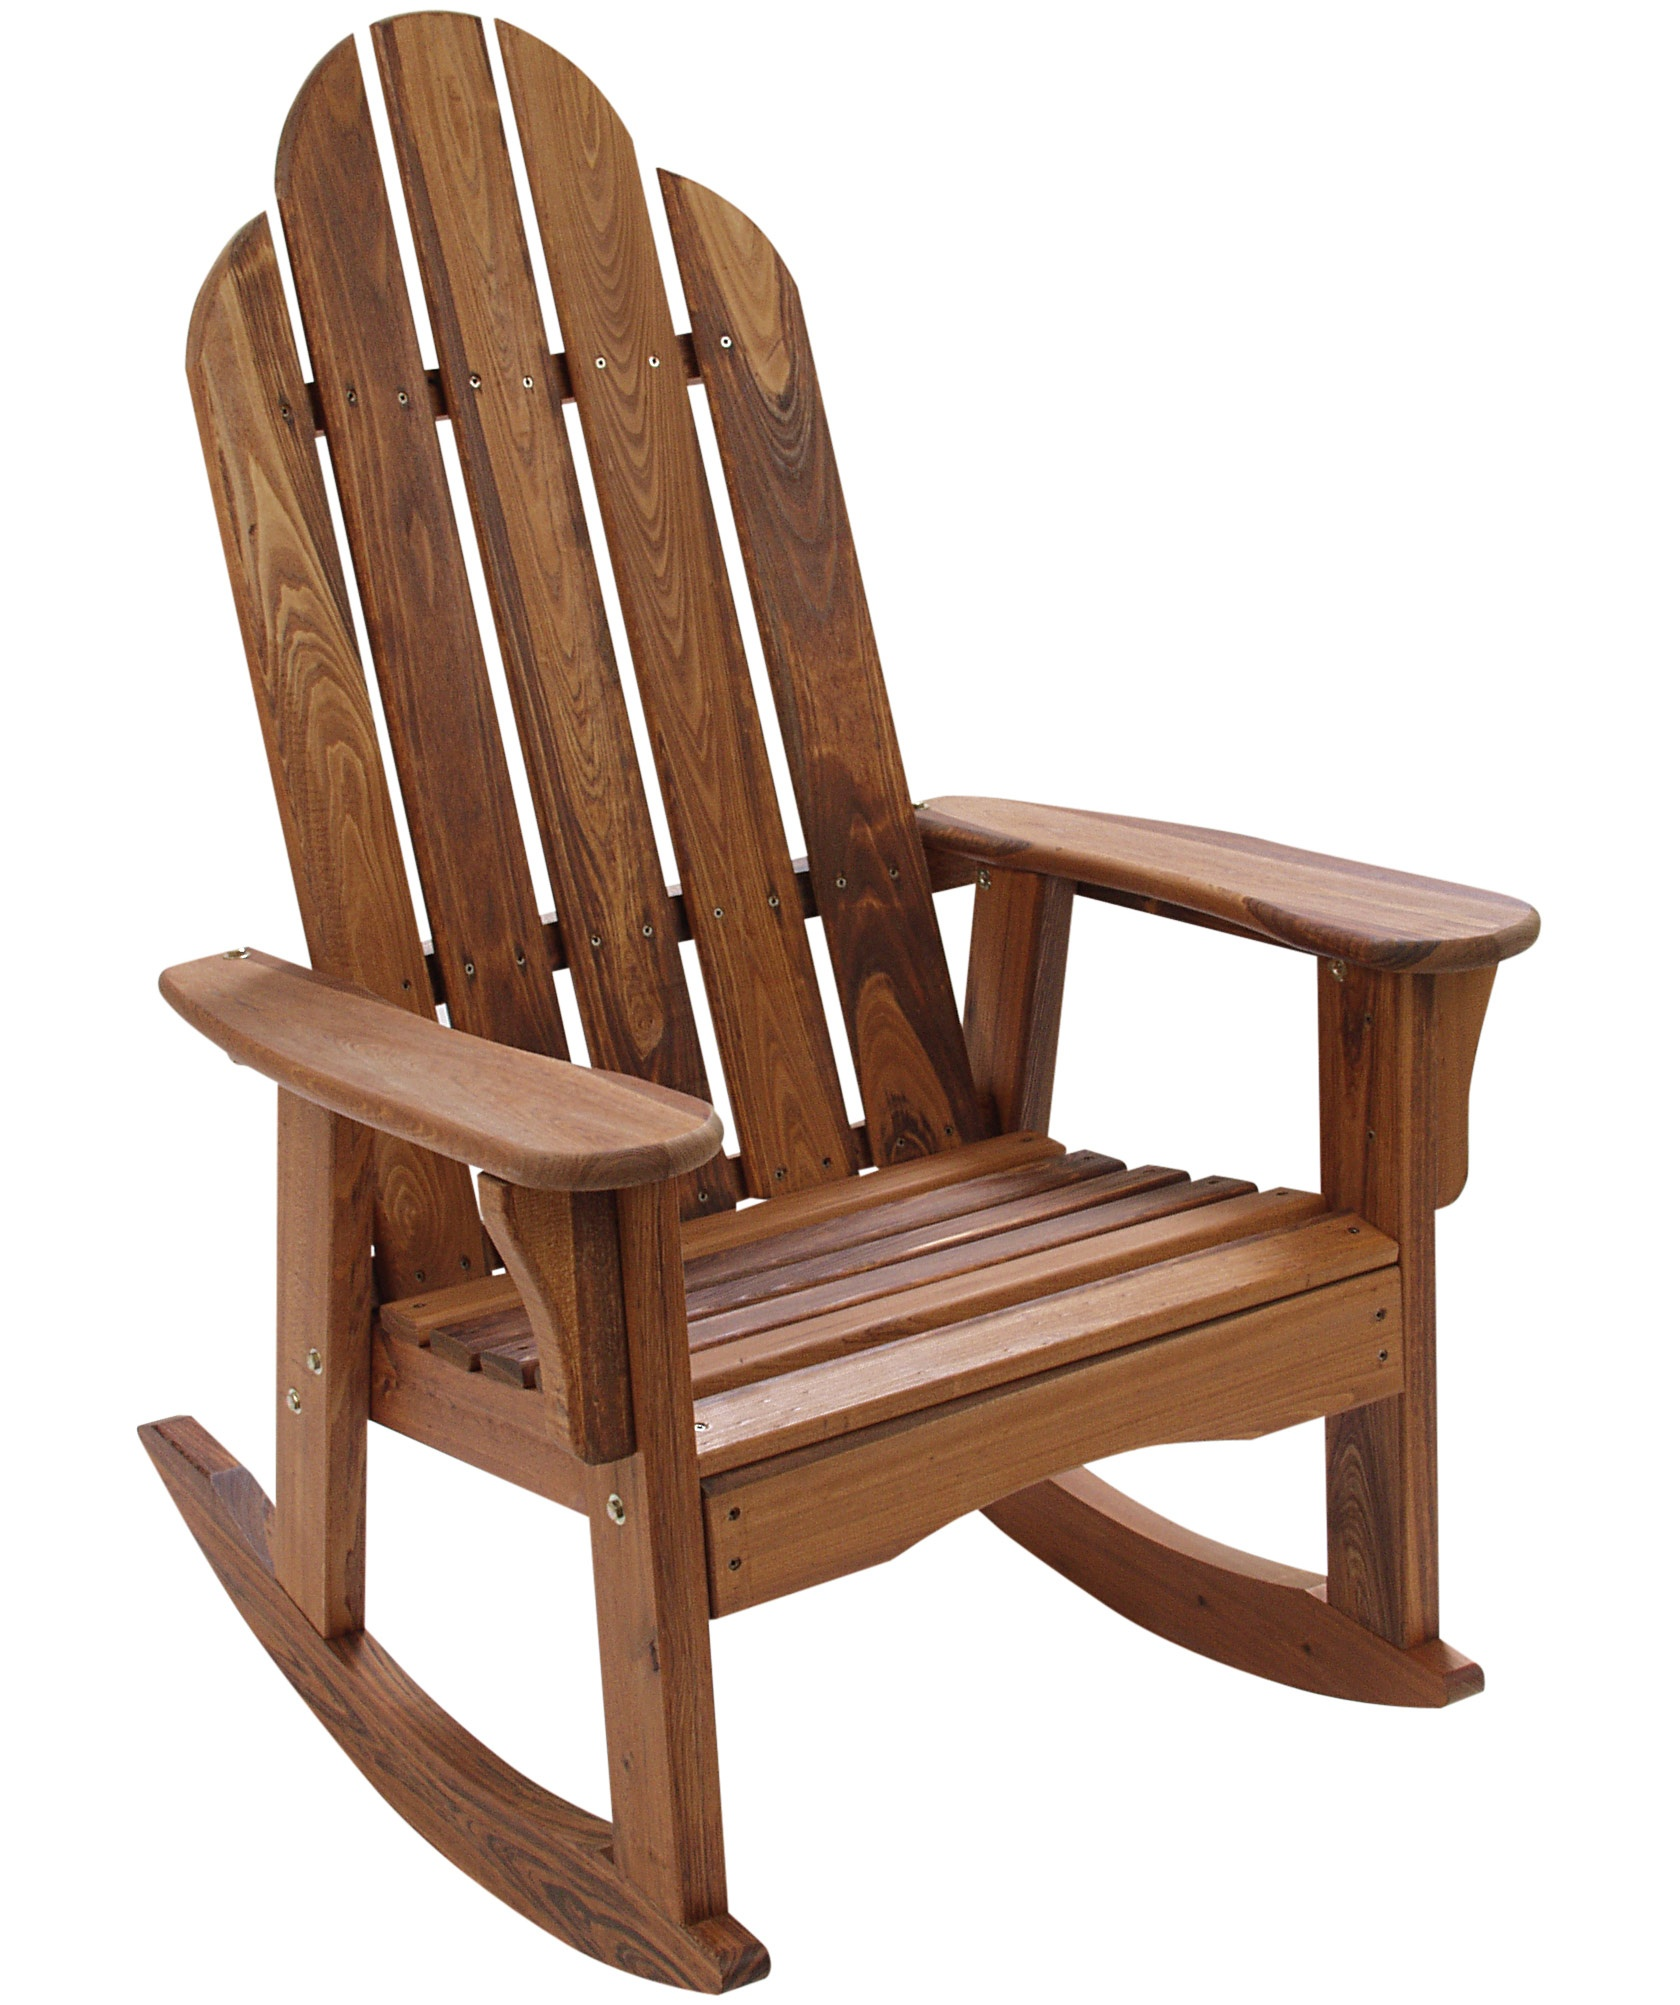 distressed adirondack chairs unusual chair beds outdoor living yard envy